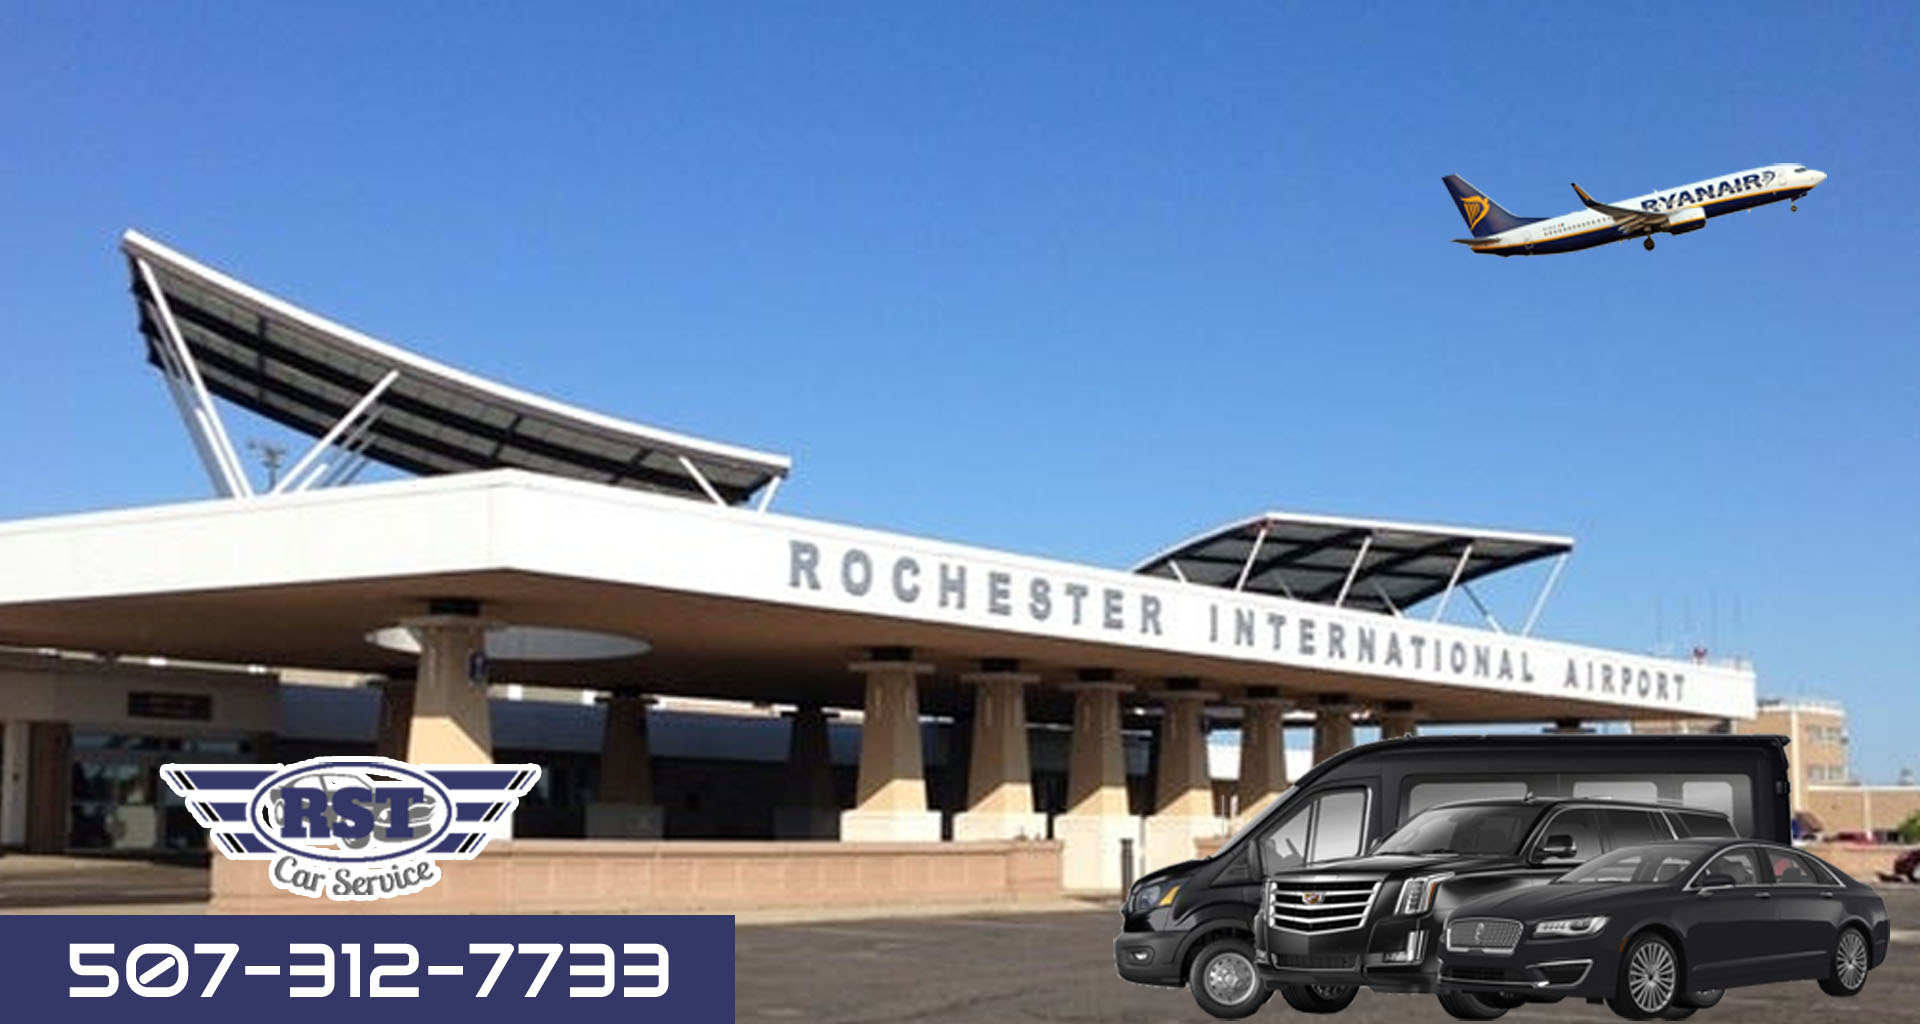 rst airport transportation minnesota